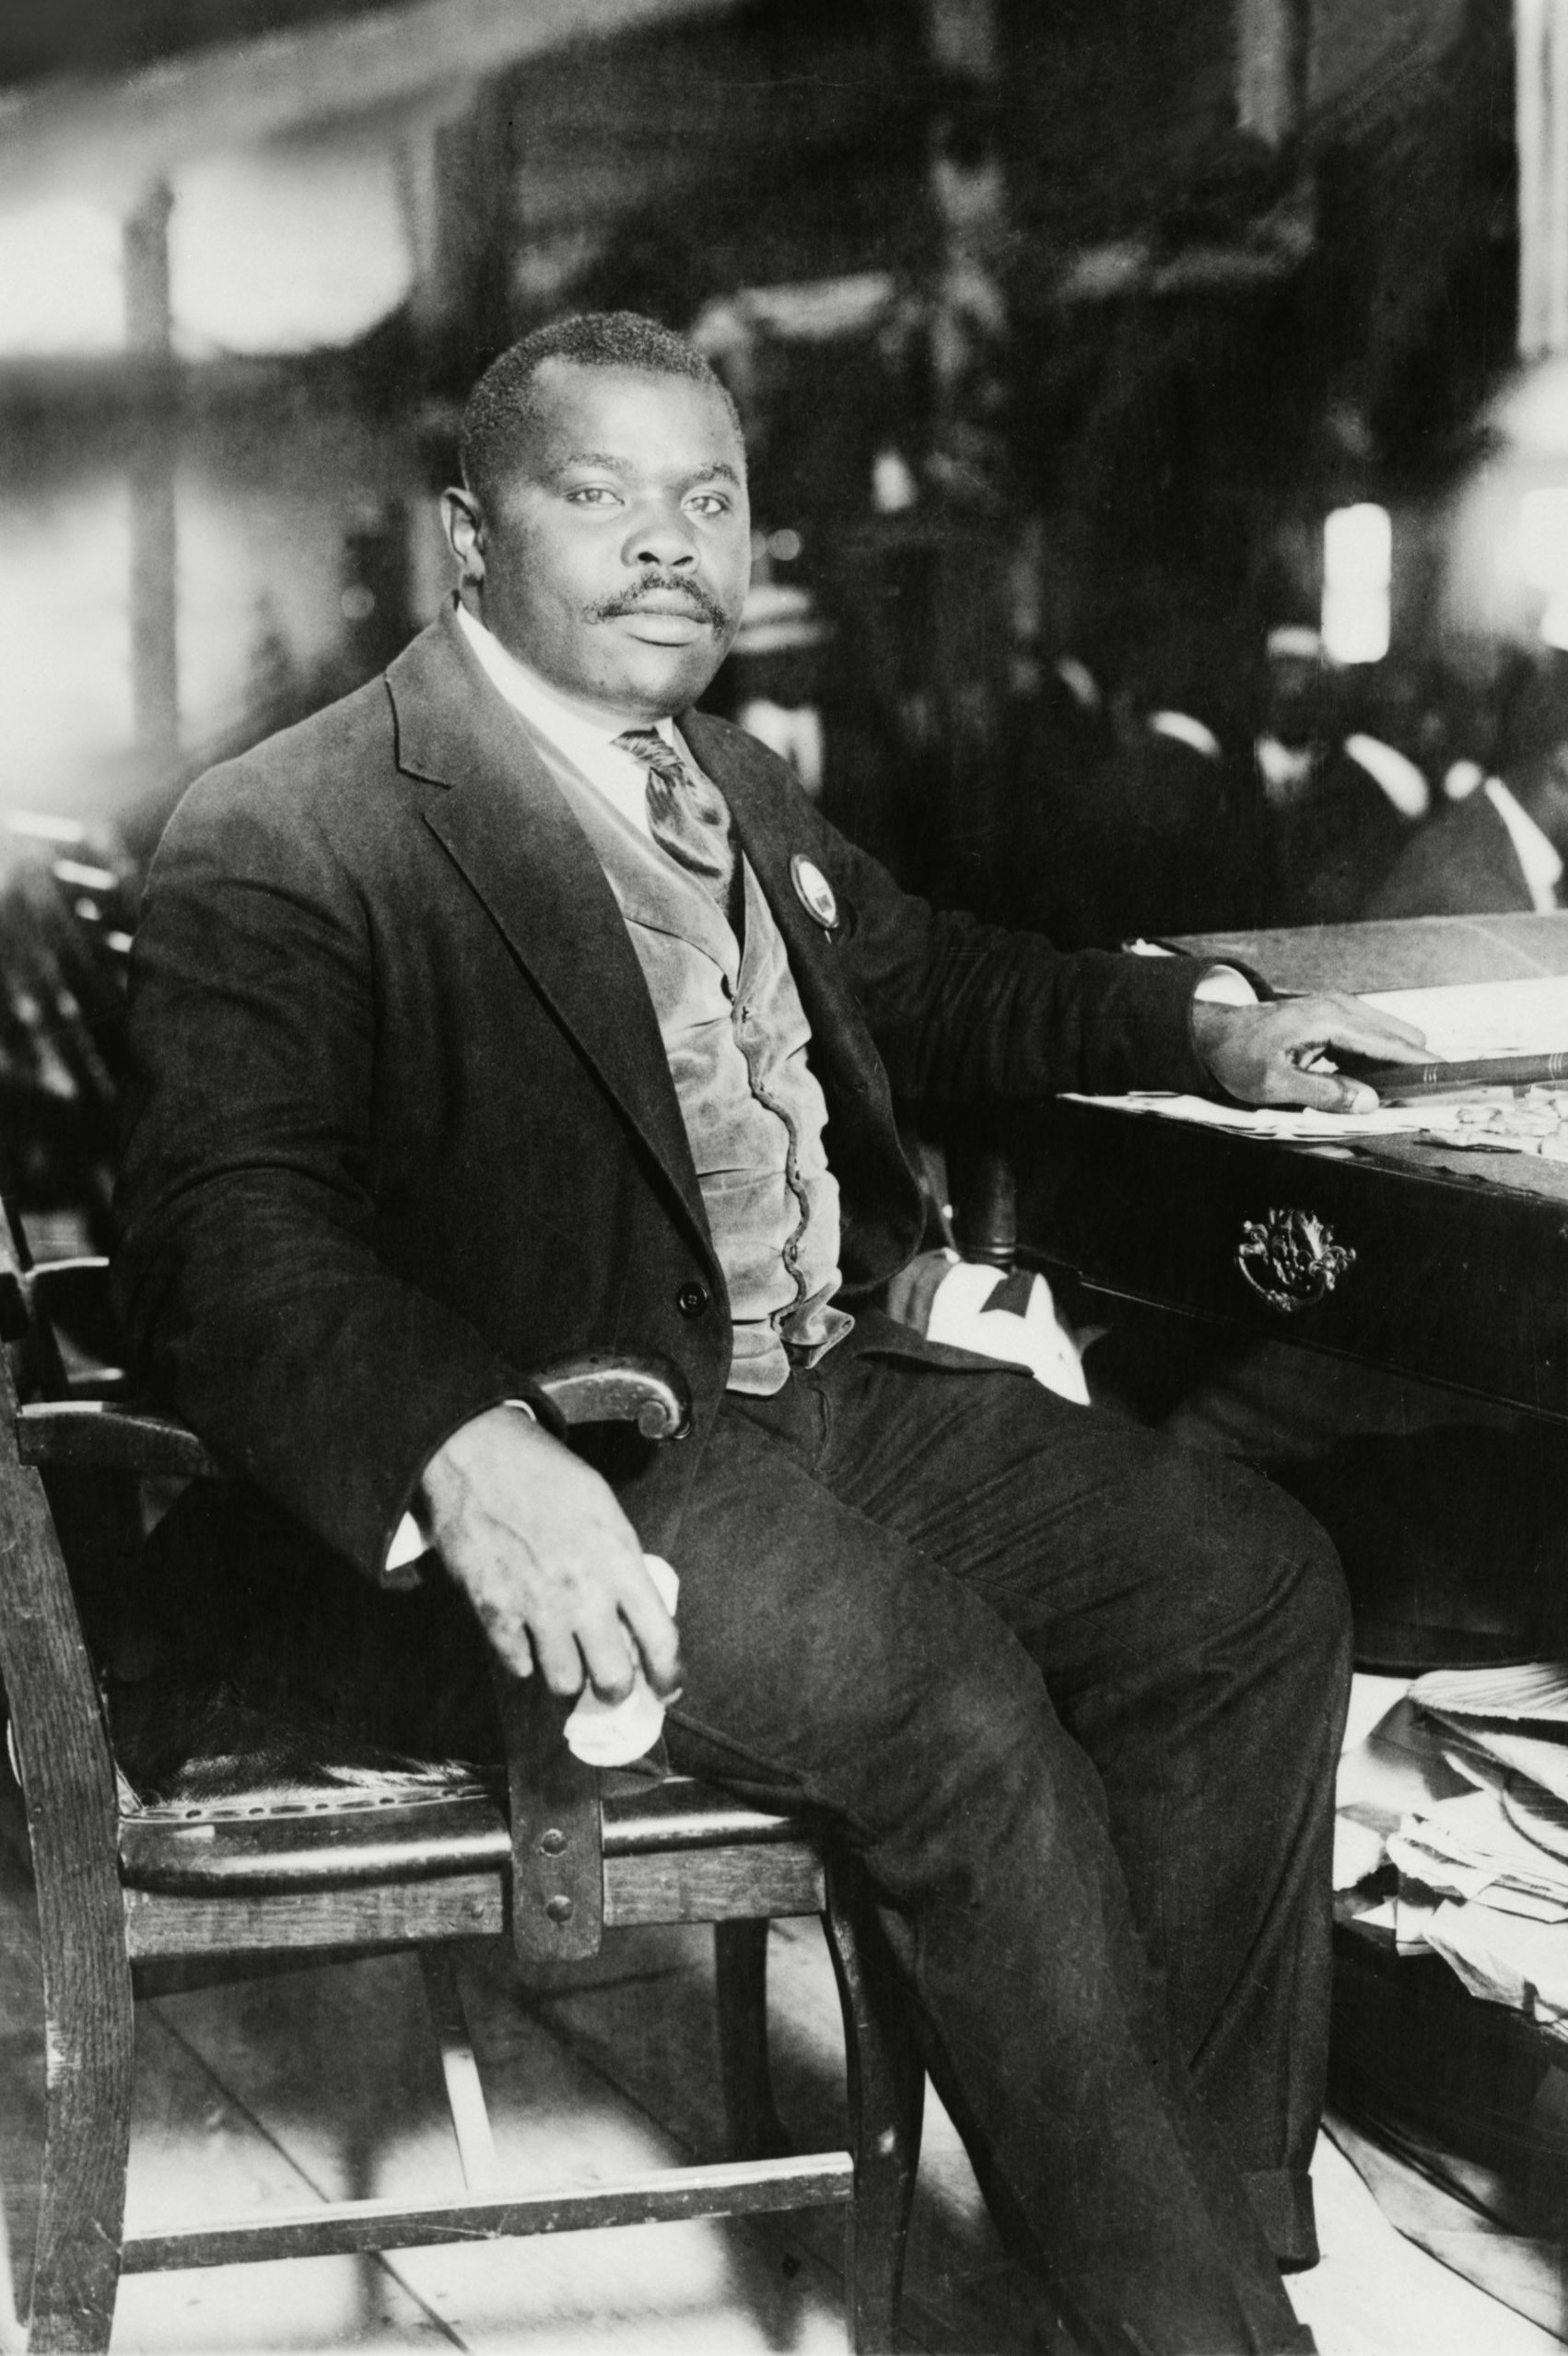 Mandatory Credit: Photo by Everett/Shutterstock (10275215a) Marcus Garvey (1887-1940), founded the African American nationalist organization, Universal Negro Improvement Association (UNIA) in 1914. His movement was successful until government investigators charged him with mail fraud, resulting in his imprisonment and deportation. Ca. 1920. Historical Collection